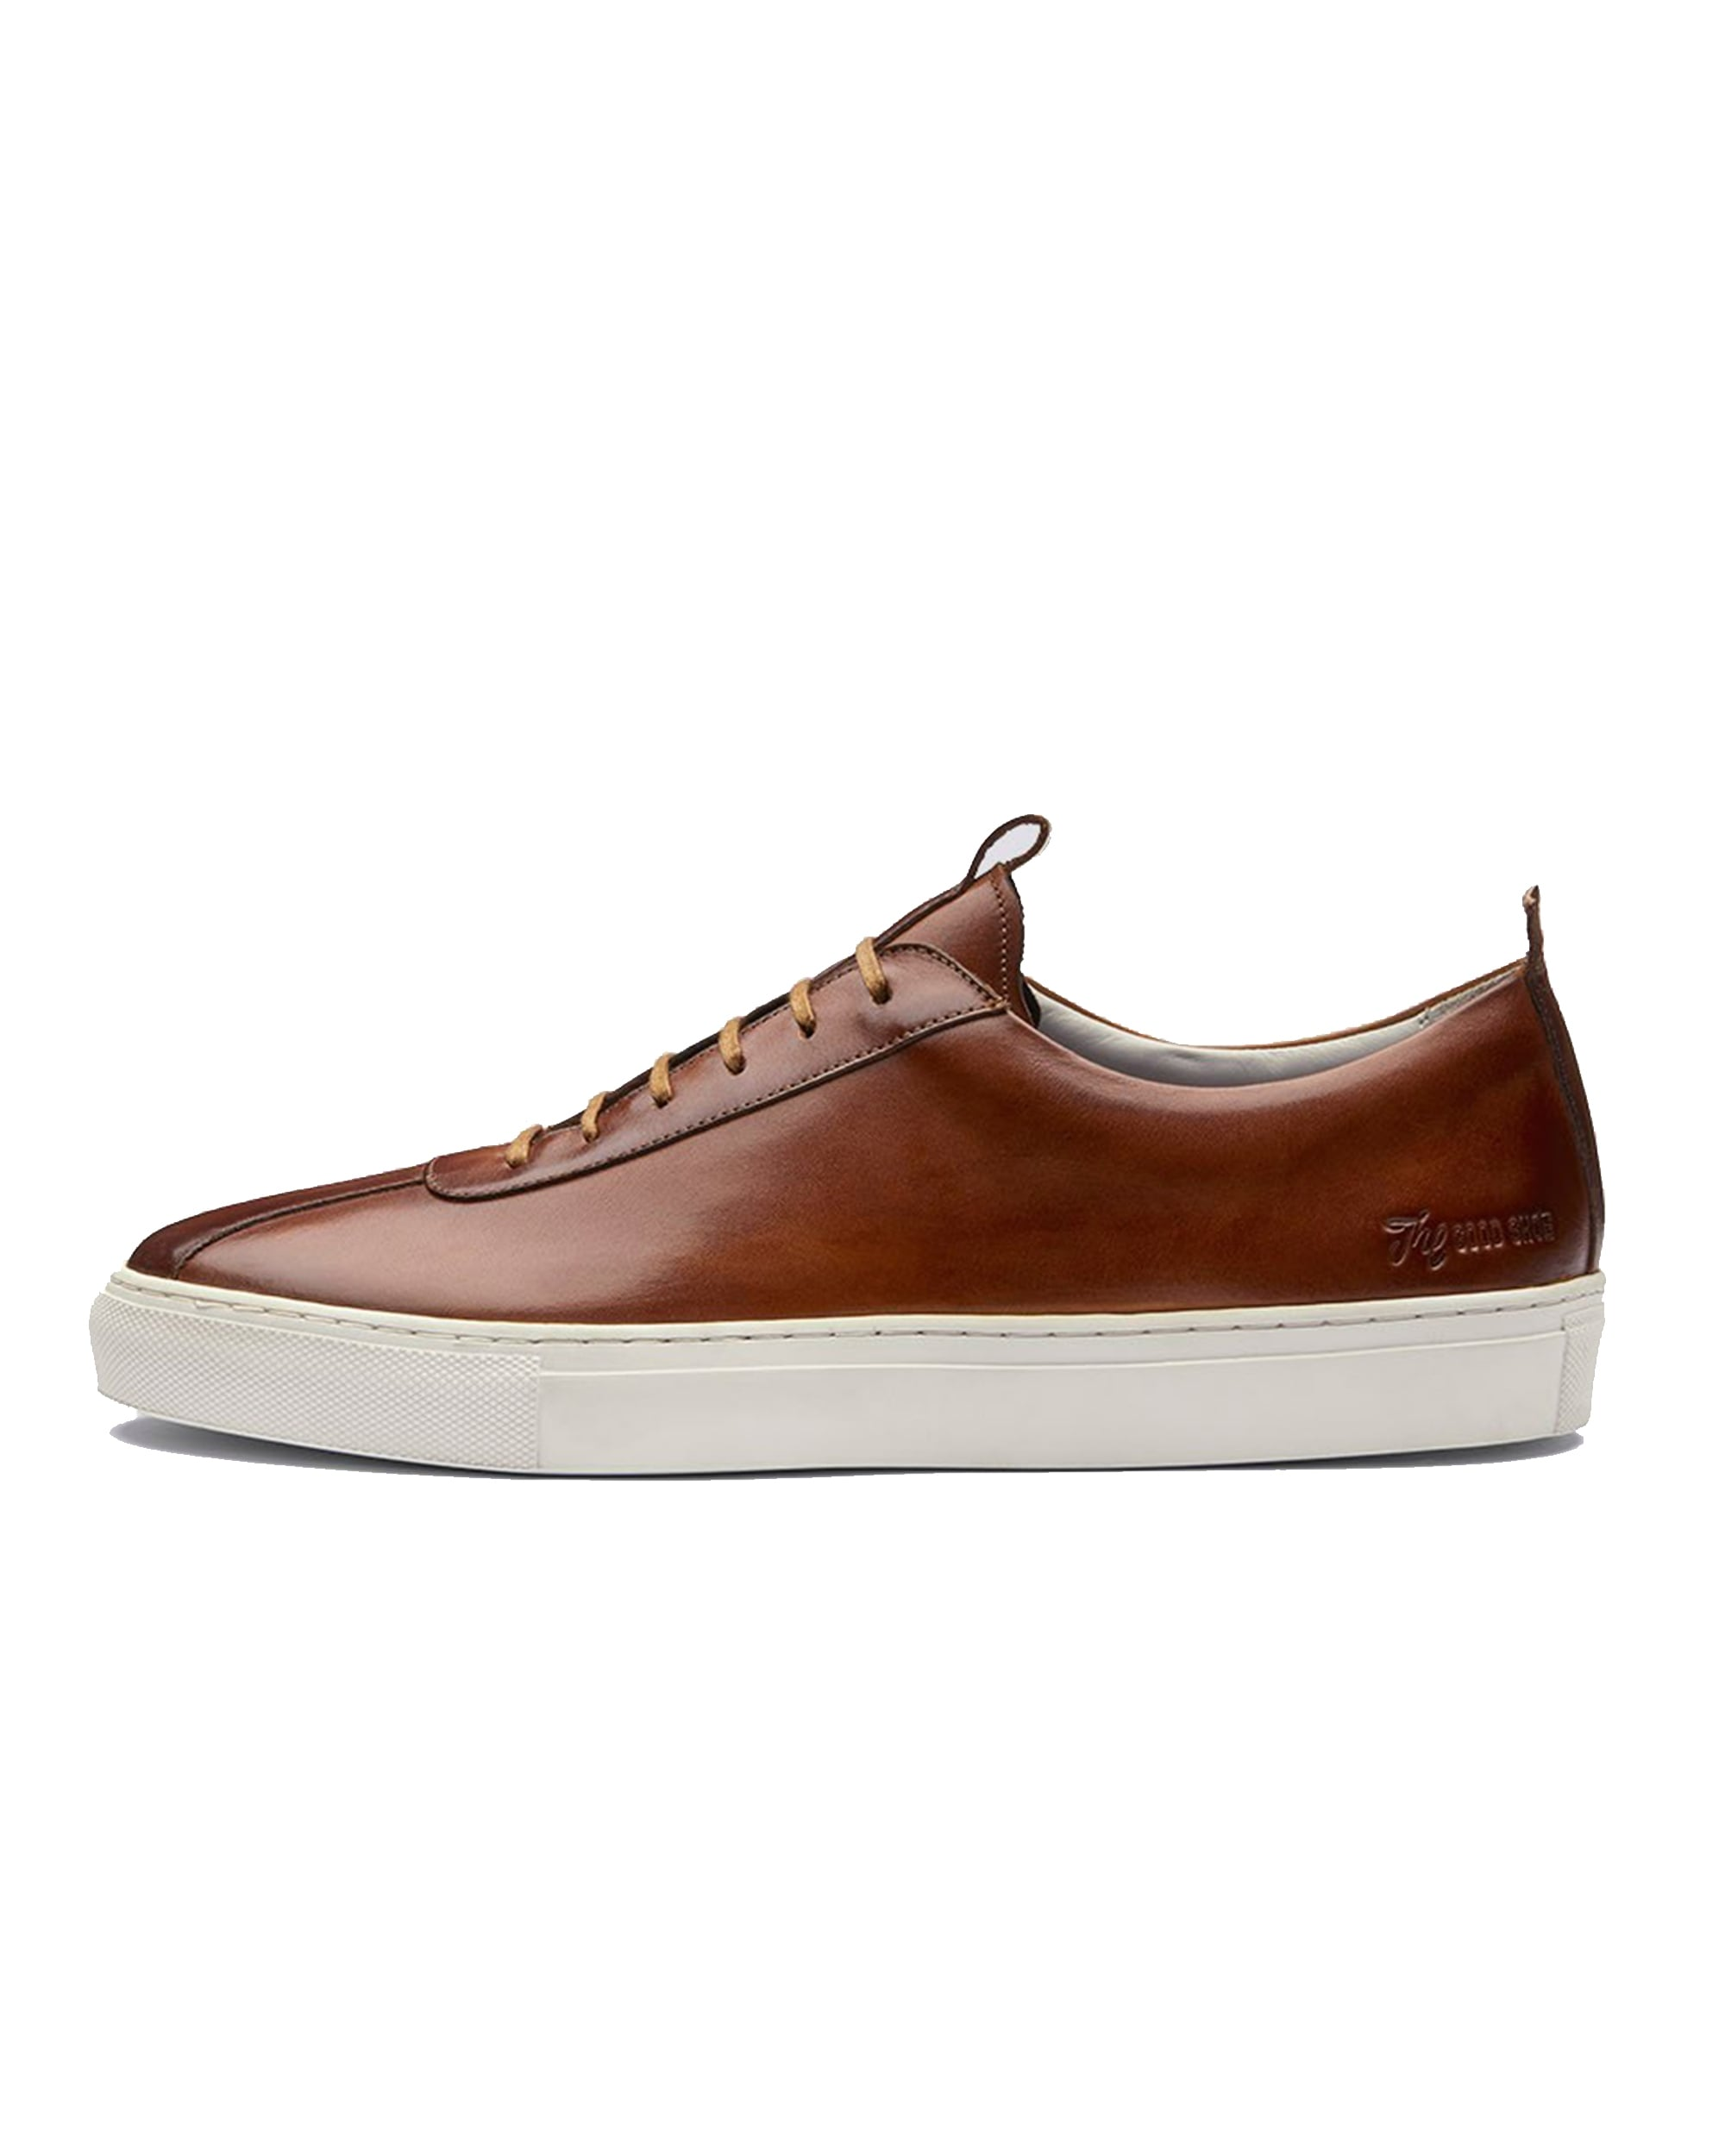 Grenson Mens Sneaker 1 Tan Lace Up Leather White Cup Sole Trainer b16e7ee8c